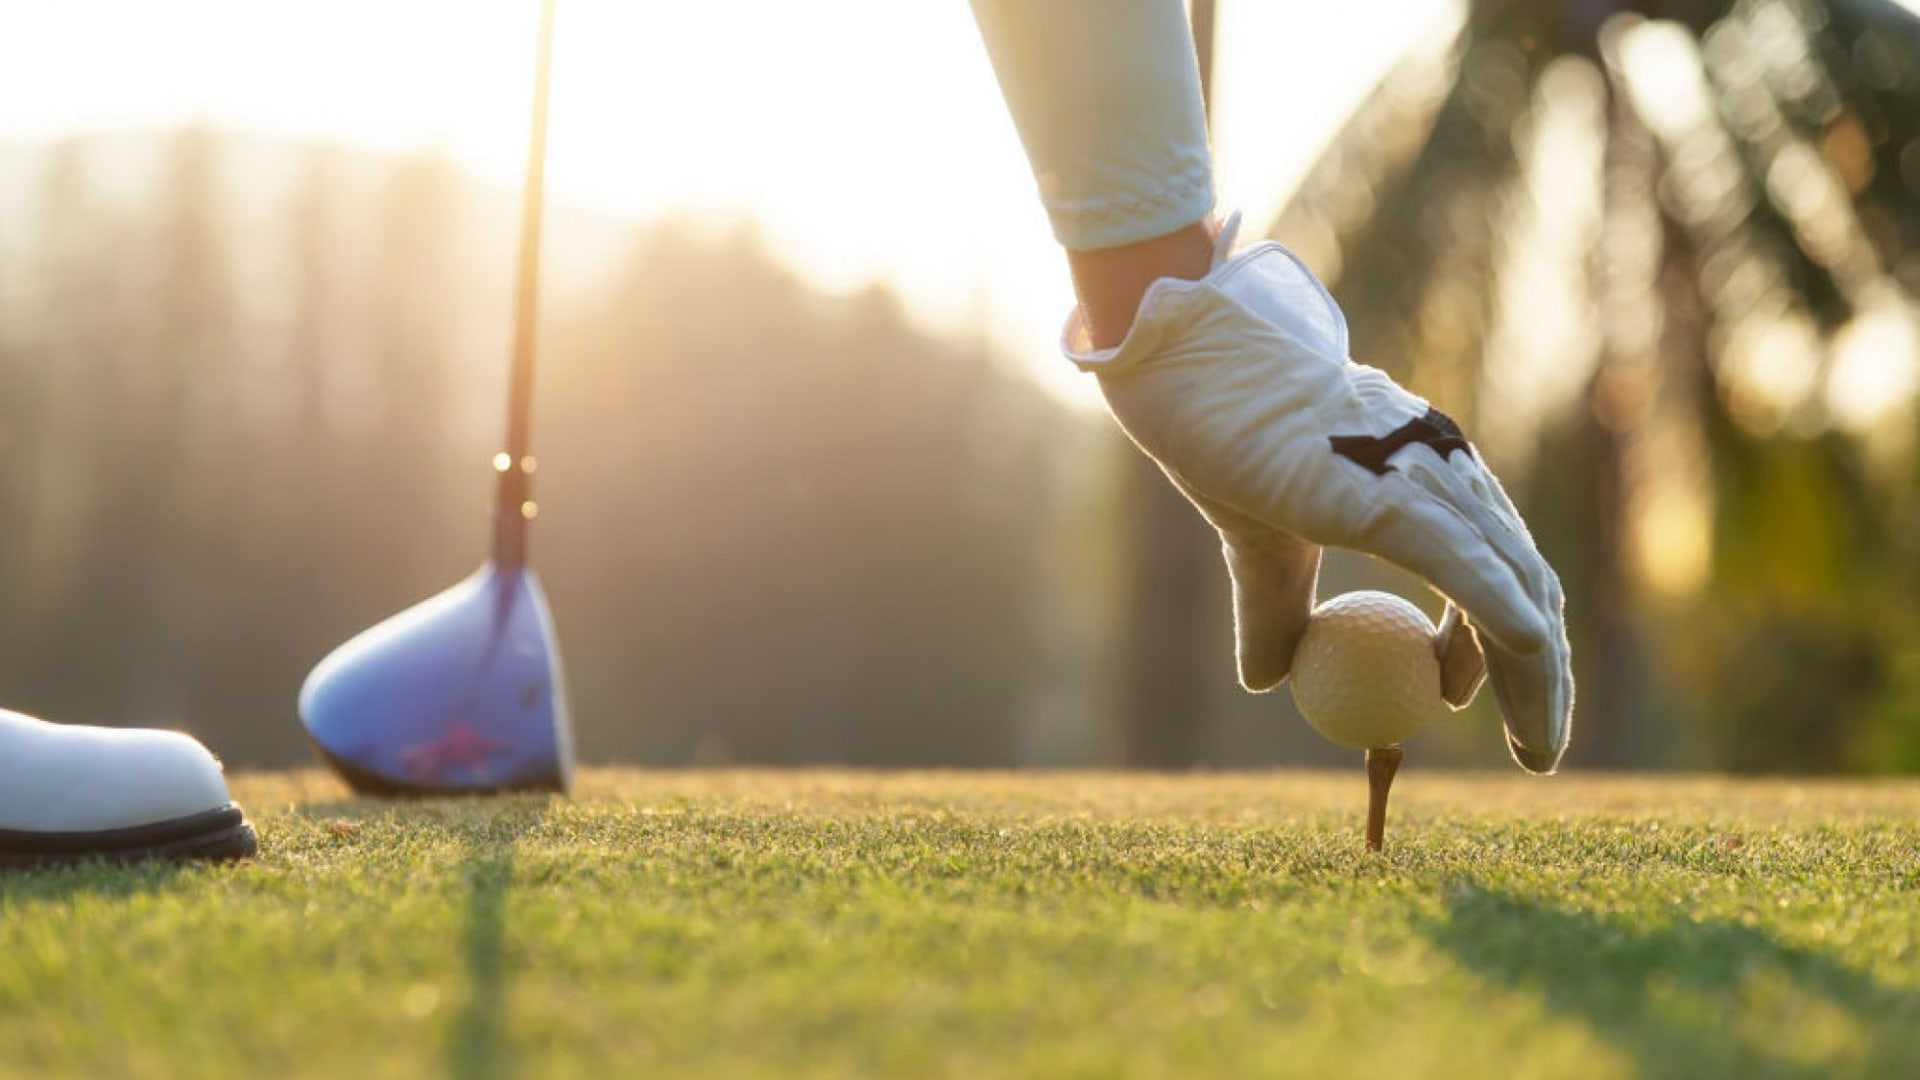 Don't Make These 4 Golf Mistakes in Your Media Interviews